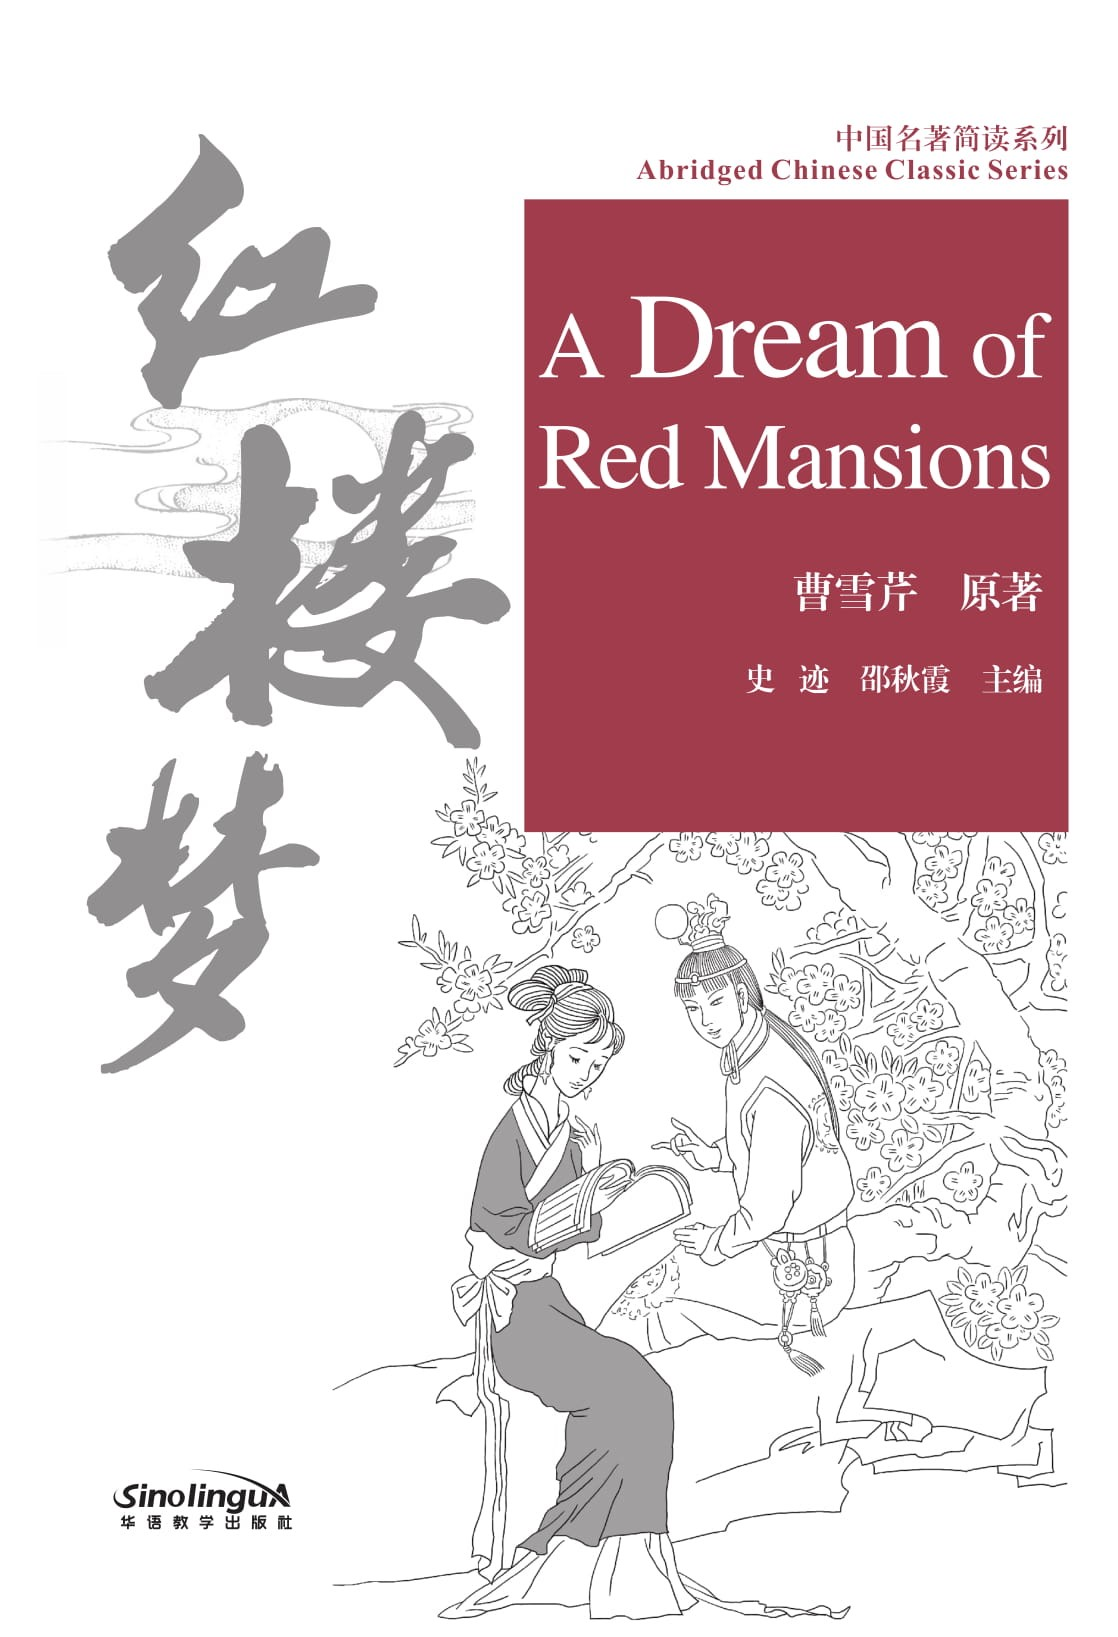 Abridged Chinese Classic Series:A Dream of Red Mansions